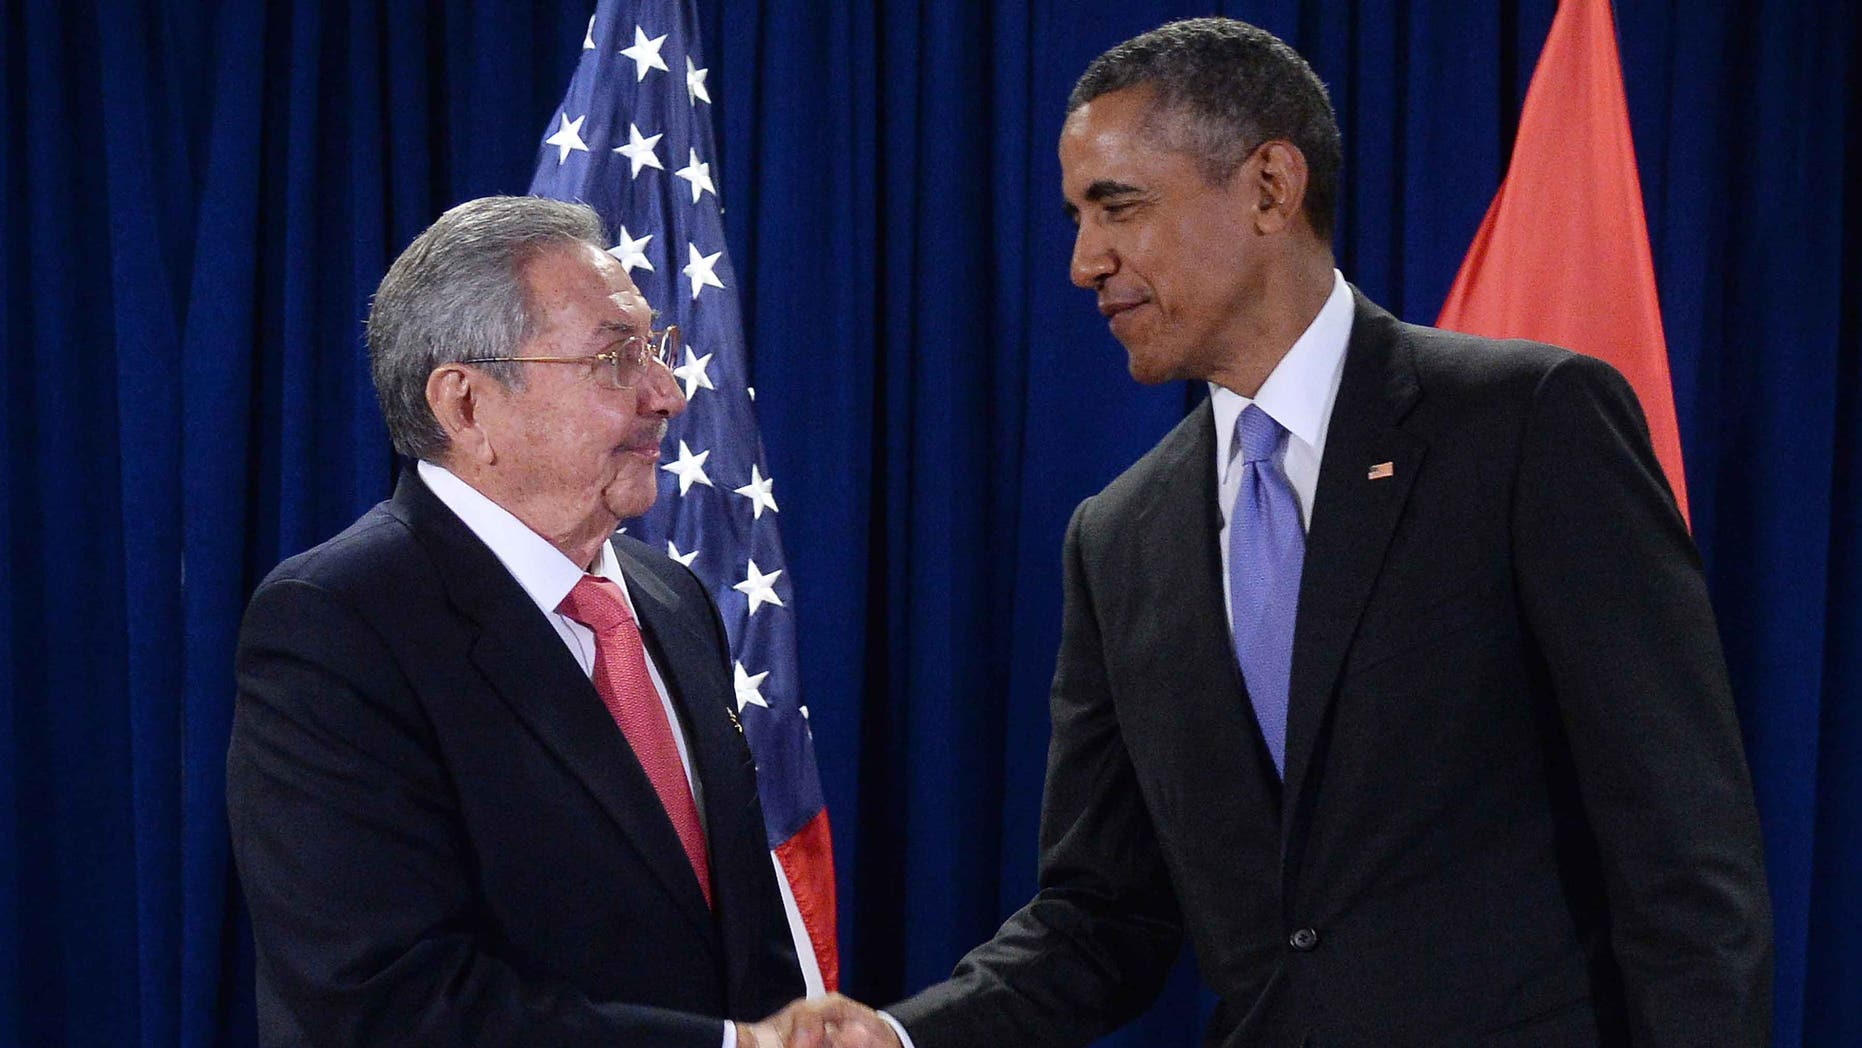 Presidents Barack Obama and Raul Castro on September 29, 2015 in New York City.